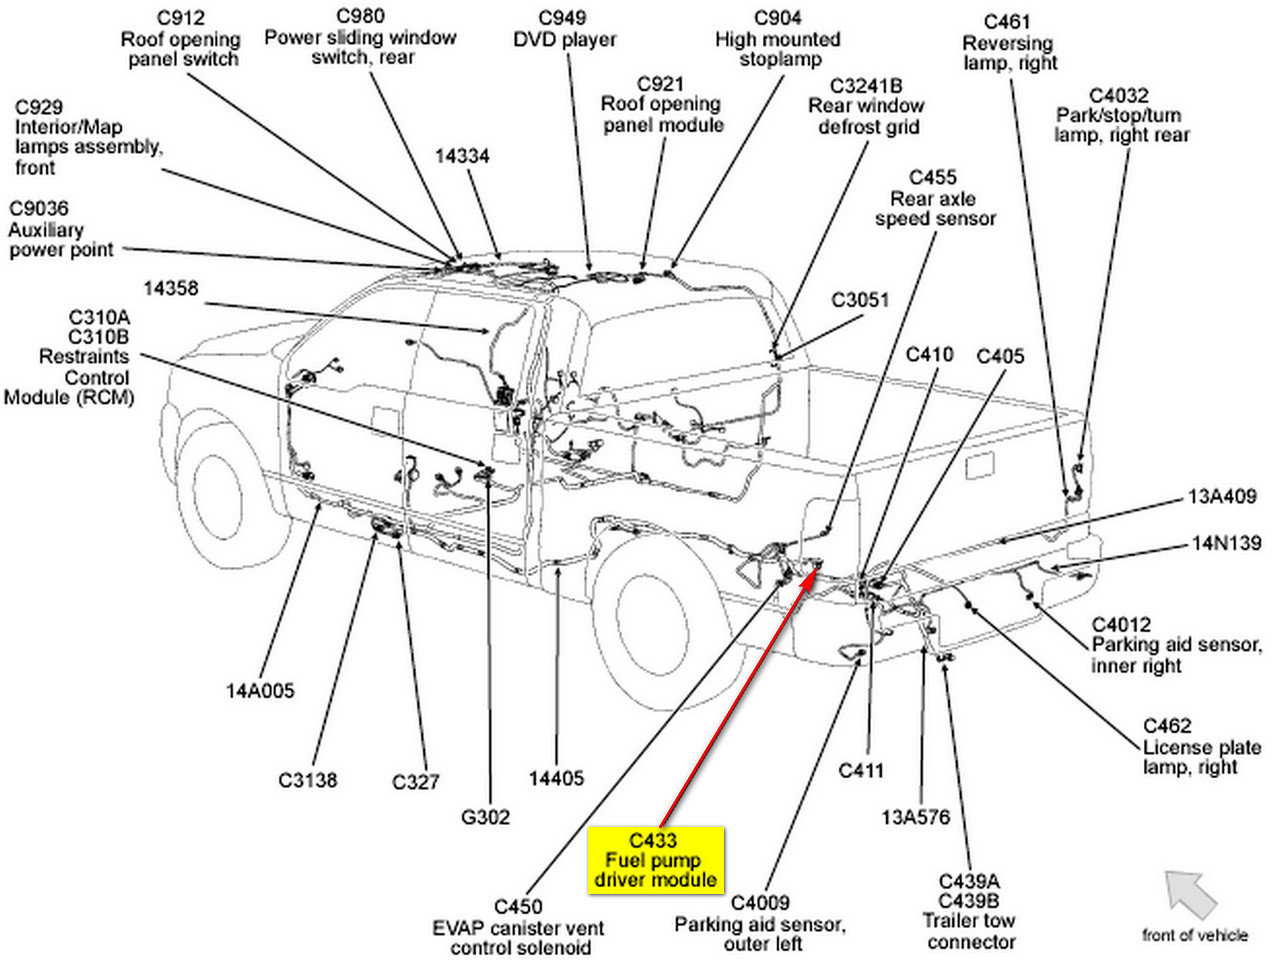 2006 Ford Escape Fuel Filter Location Circuit Diagrams Schema Engine Wiring Diagram Pump Replacement On 1998 Explorer Cooling System